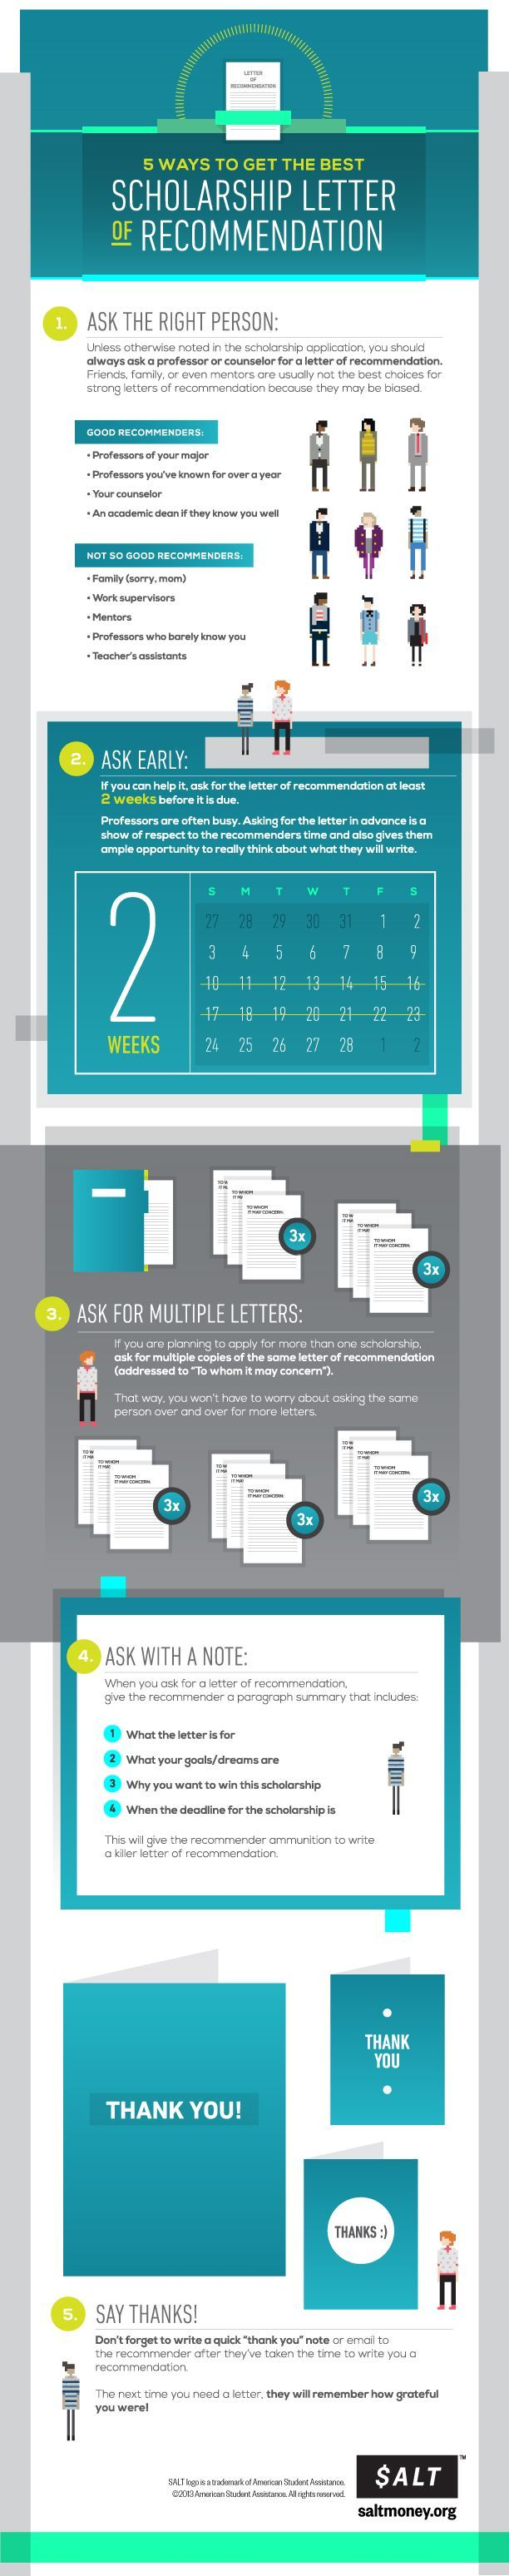 5 Ways To Get The Best Letter Of Recommendation For Scholarships [INFOGRAPHIC]